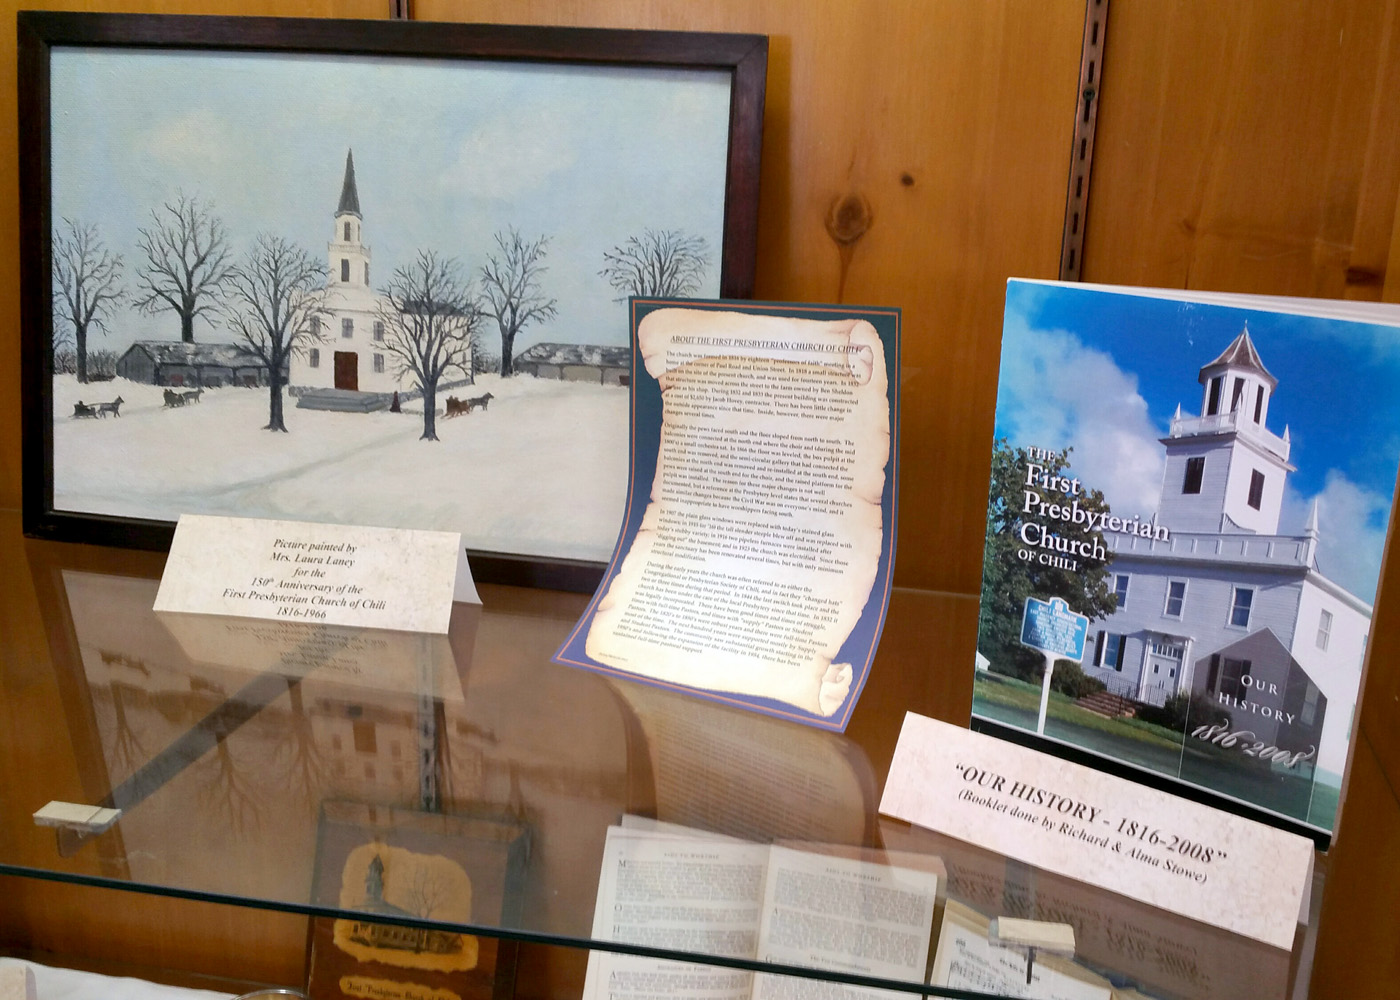 Some of the artifacts that illustrate the First Presbyterian Church of Chili's 200-year history. Provided photo